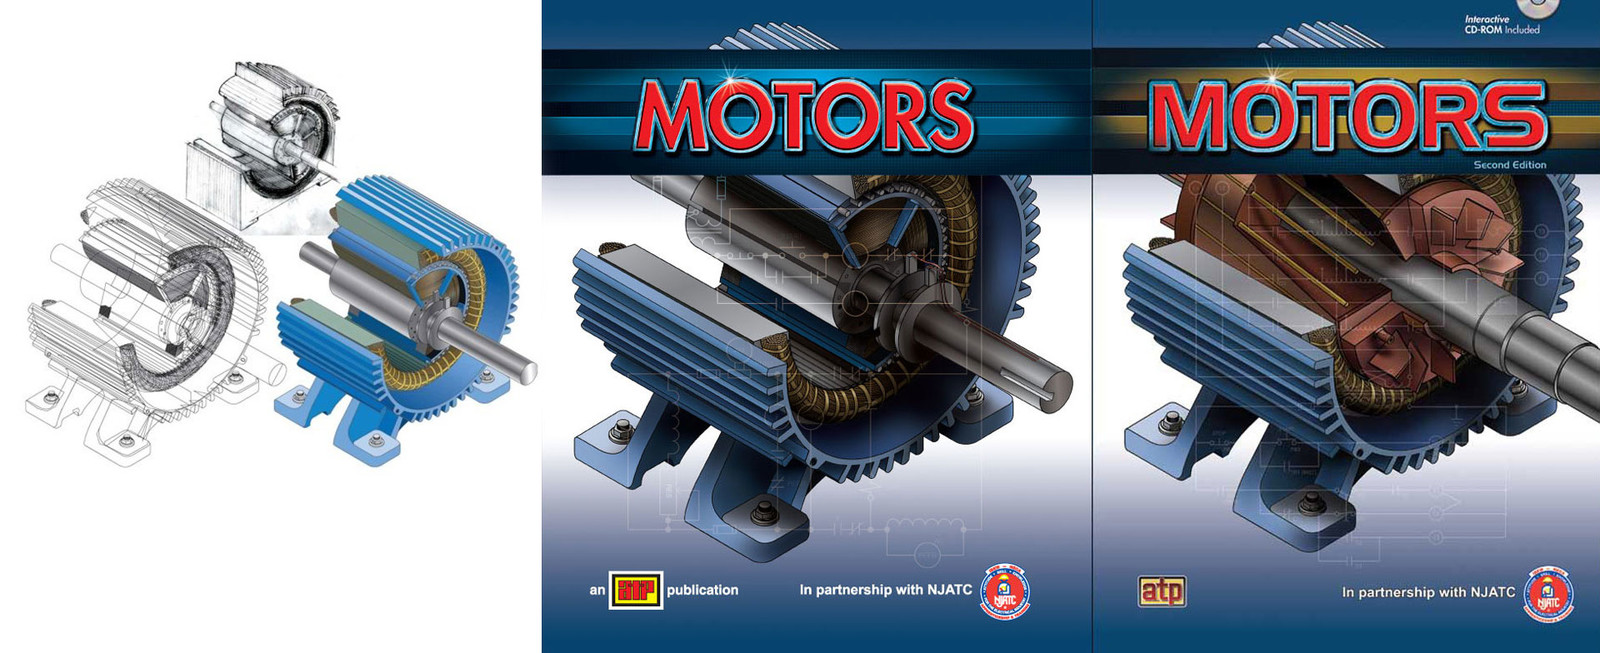 Covers from the first and second editions of Motors. These motor cutaways were hand drawn first and then recreated isometrically in Illustrator. At the time, I was just starting to learn 3D and these specific images were the inspiration to learn it.